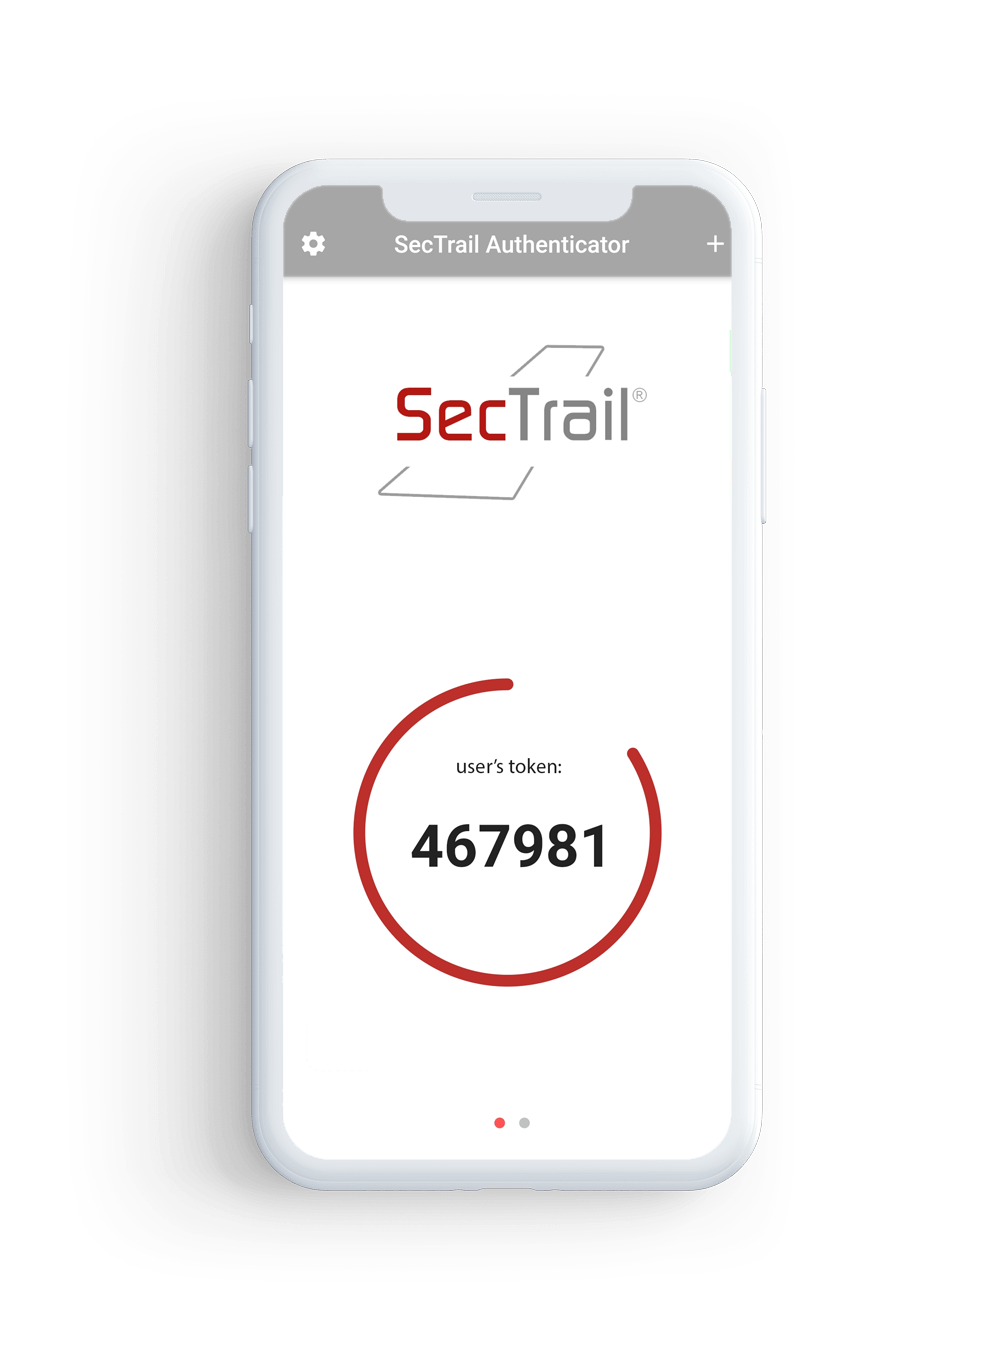 sectrail-authenticator